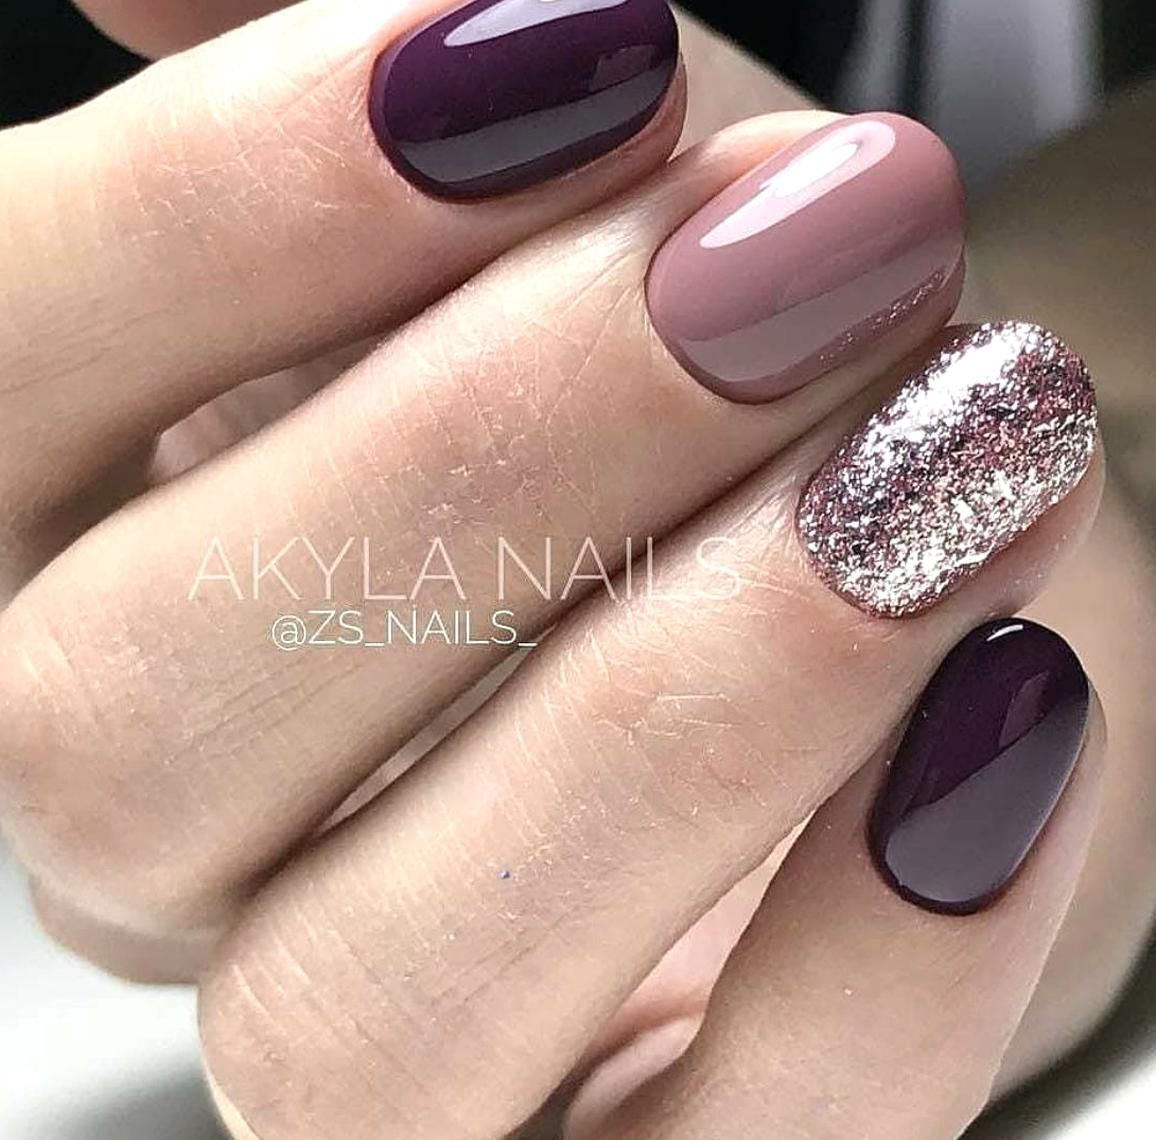 Pin By Vivian Cook On Nails In 2020 Mauve Nails Wedding Nails Design Manicure Colors